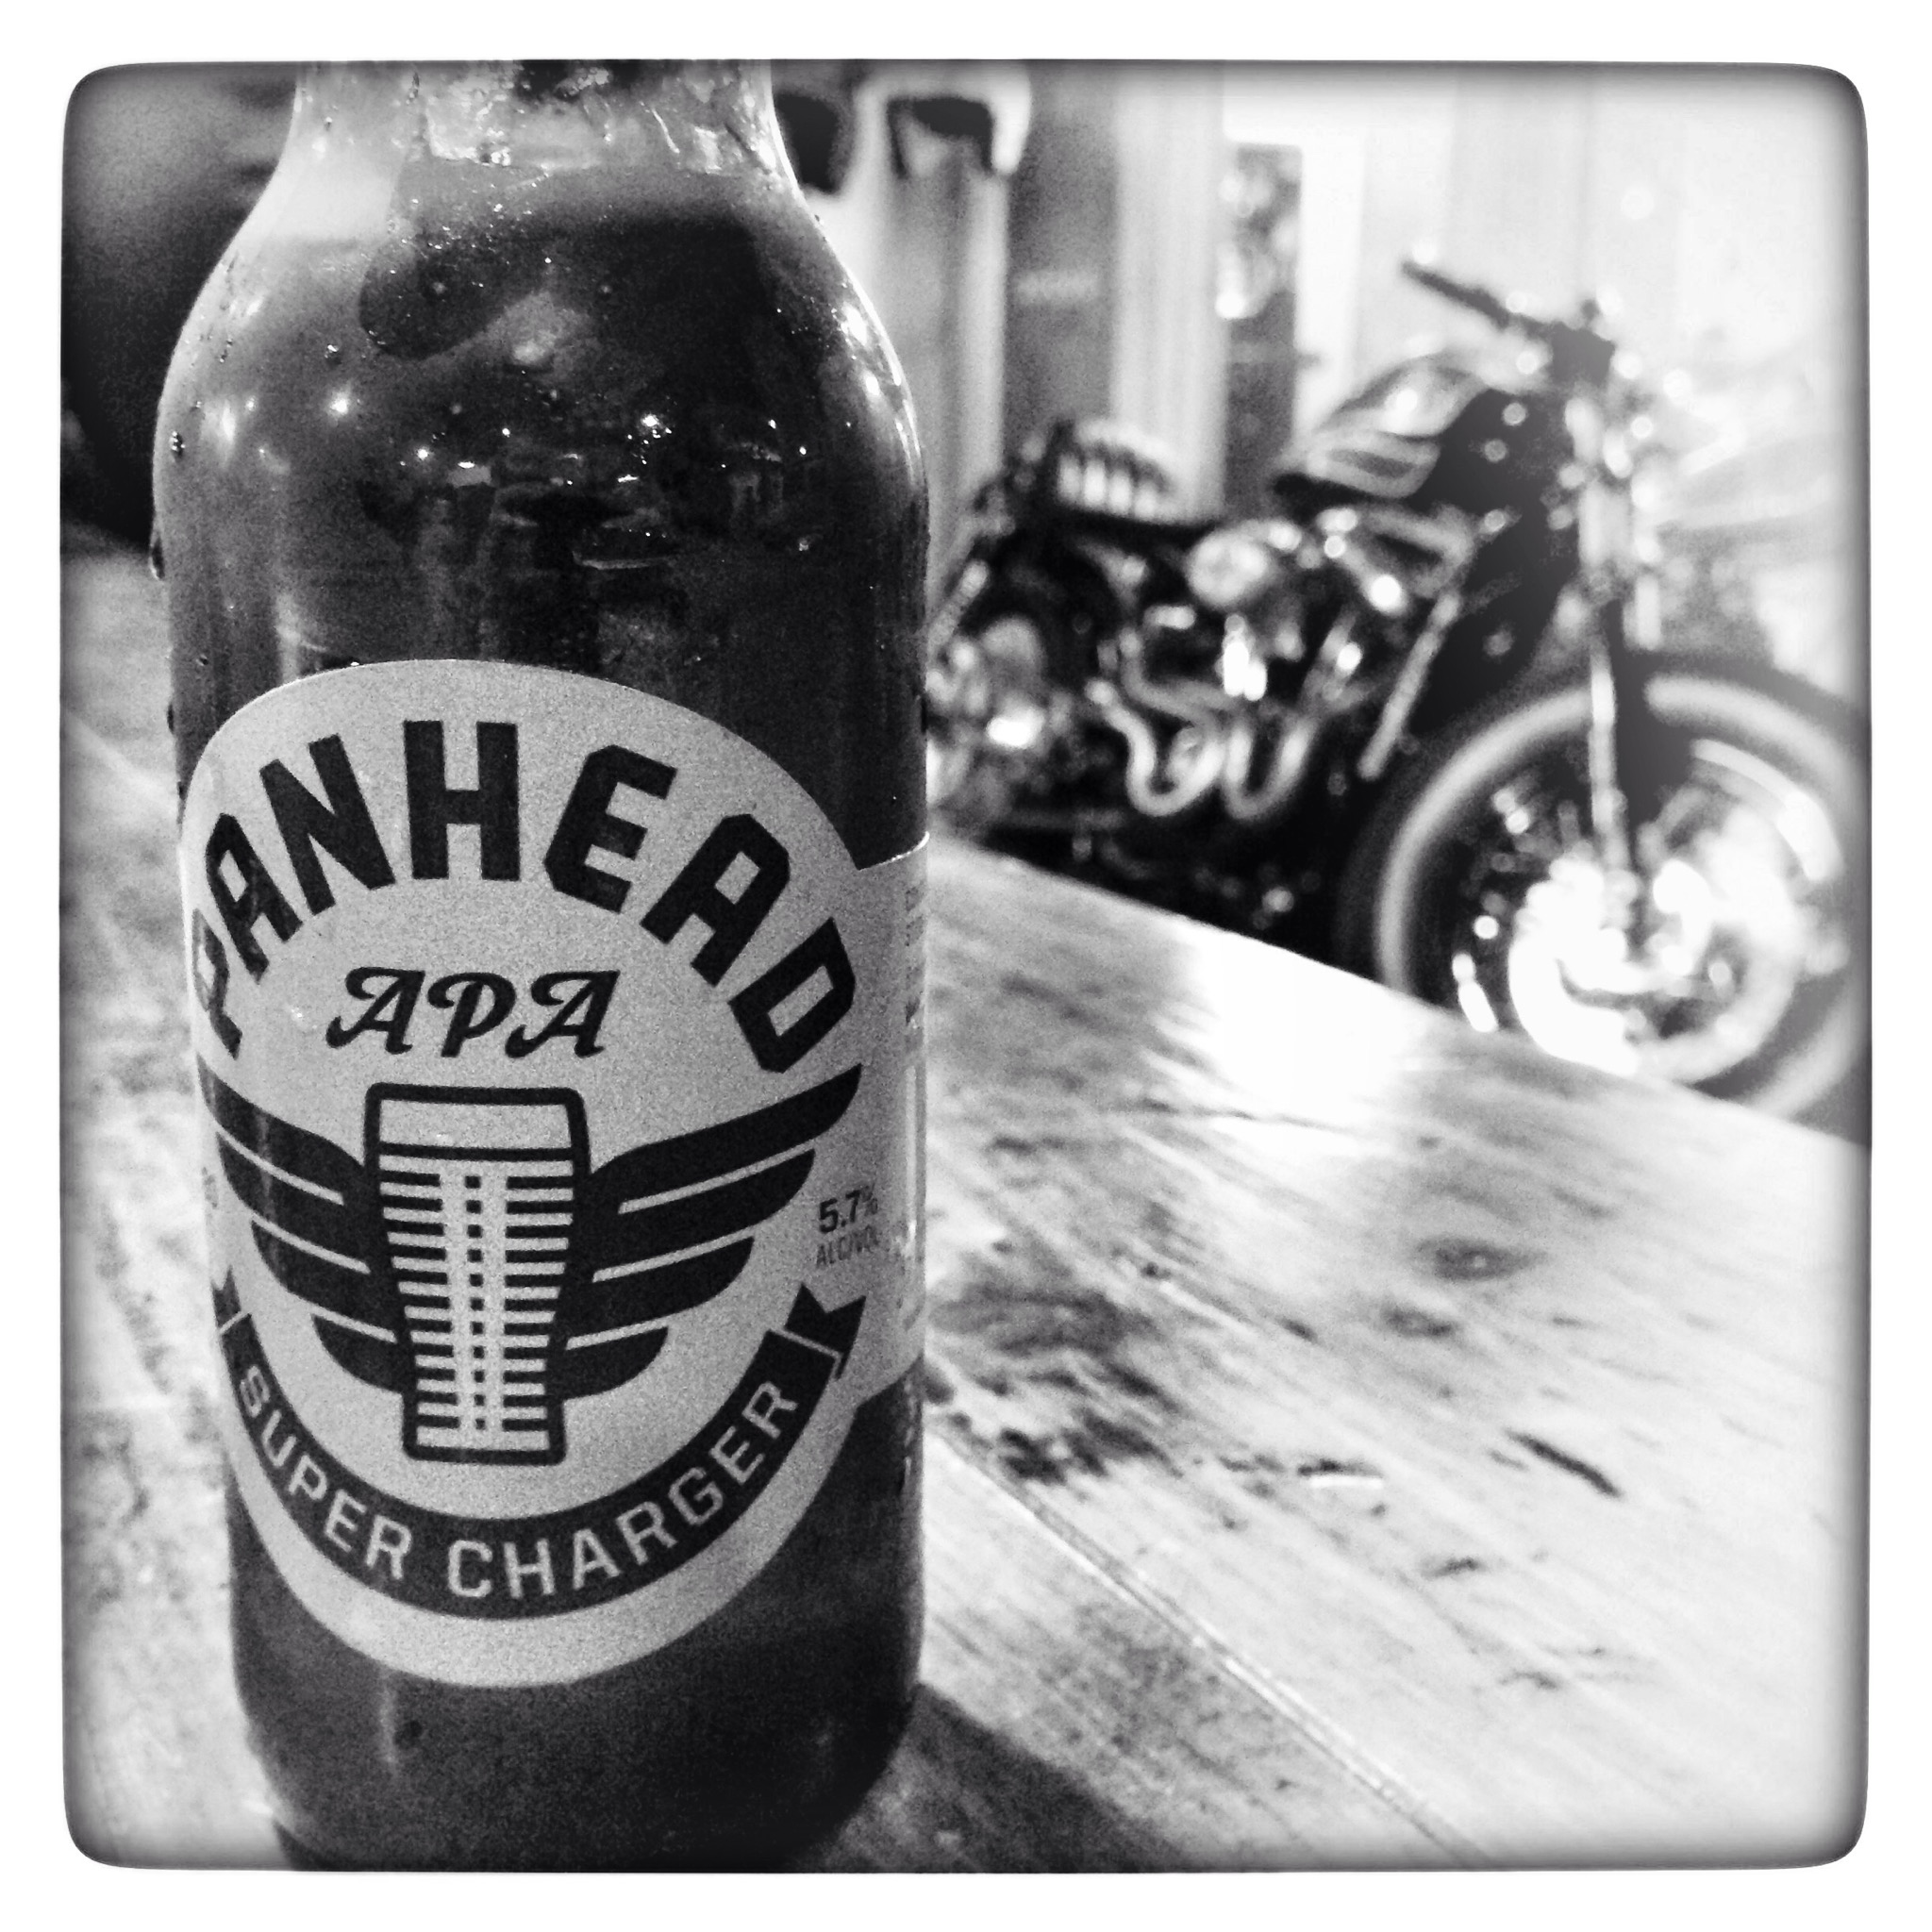 Day 1353. Beers and Bikes